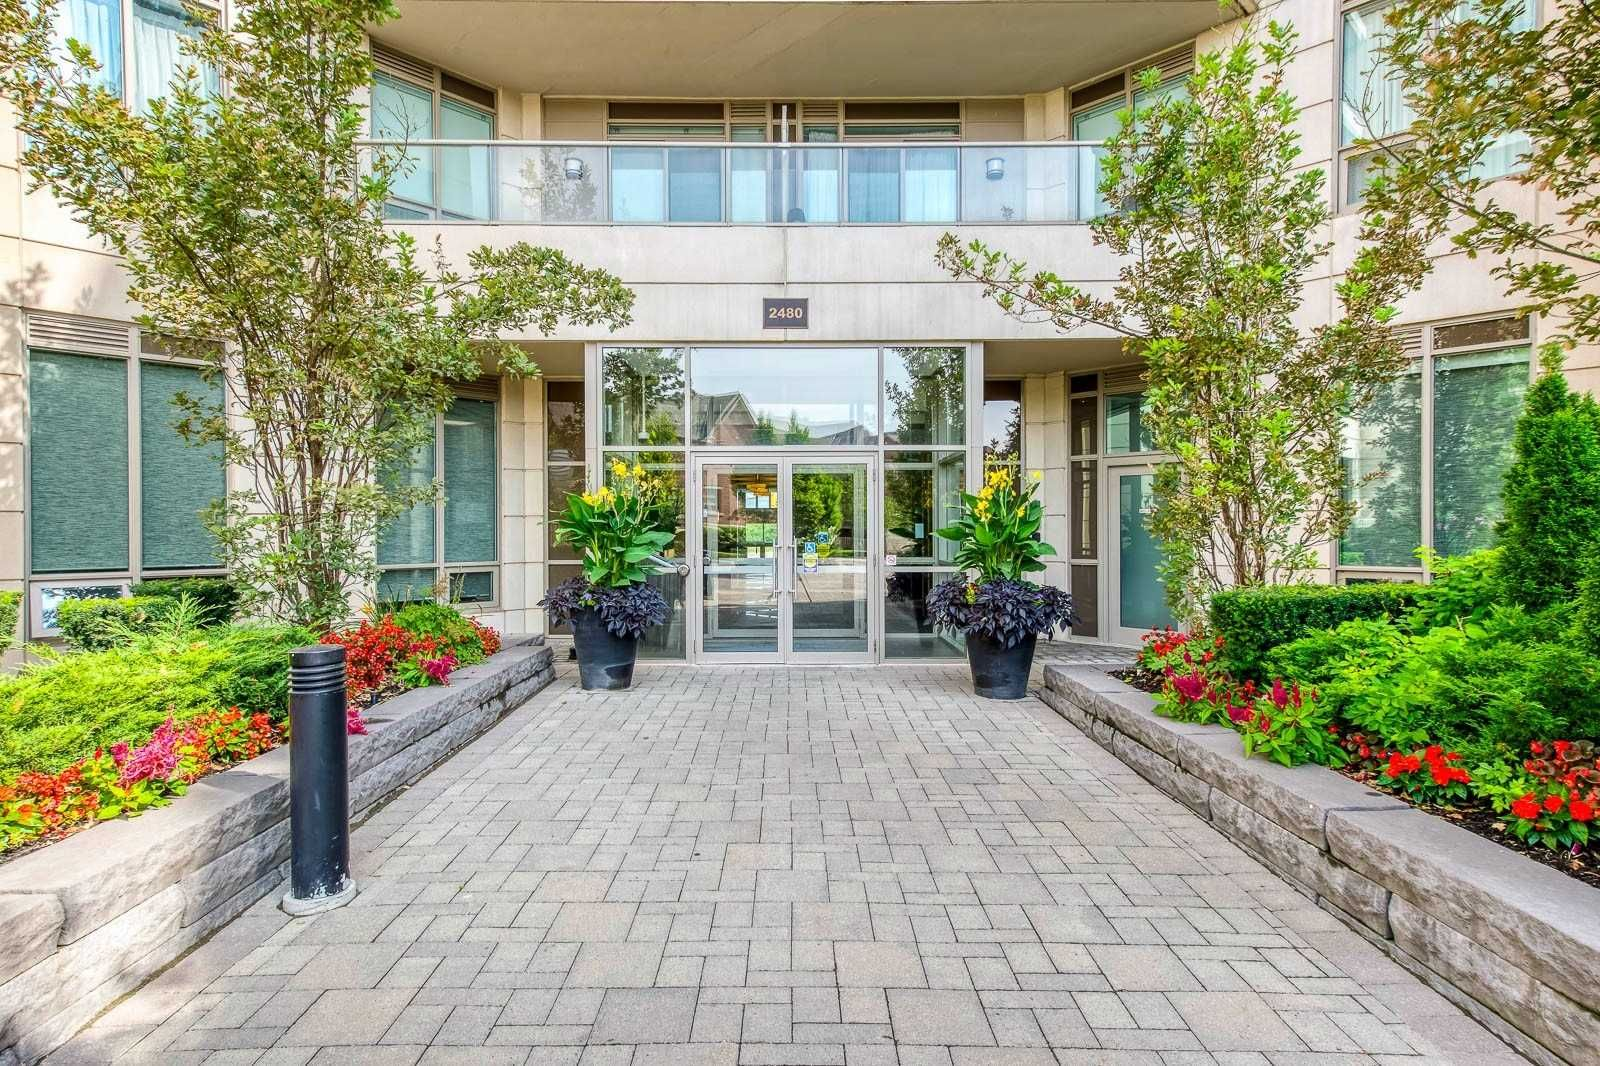 2480 Prince Michael Dr, unit 434 for sale in Toronto - image #2